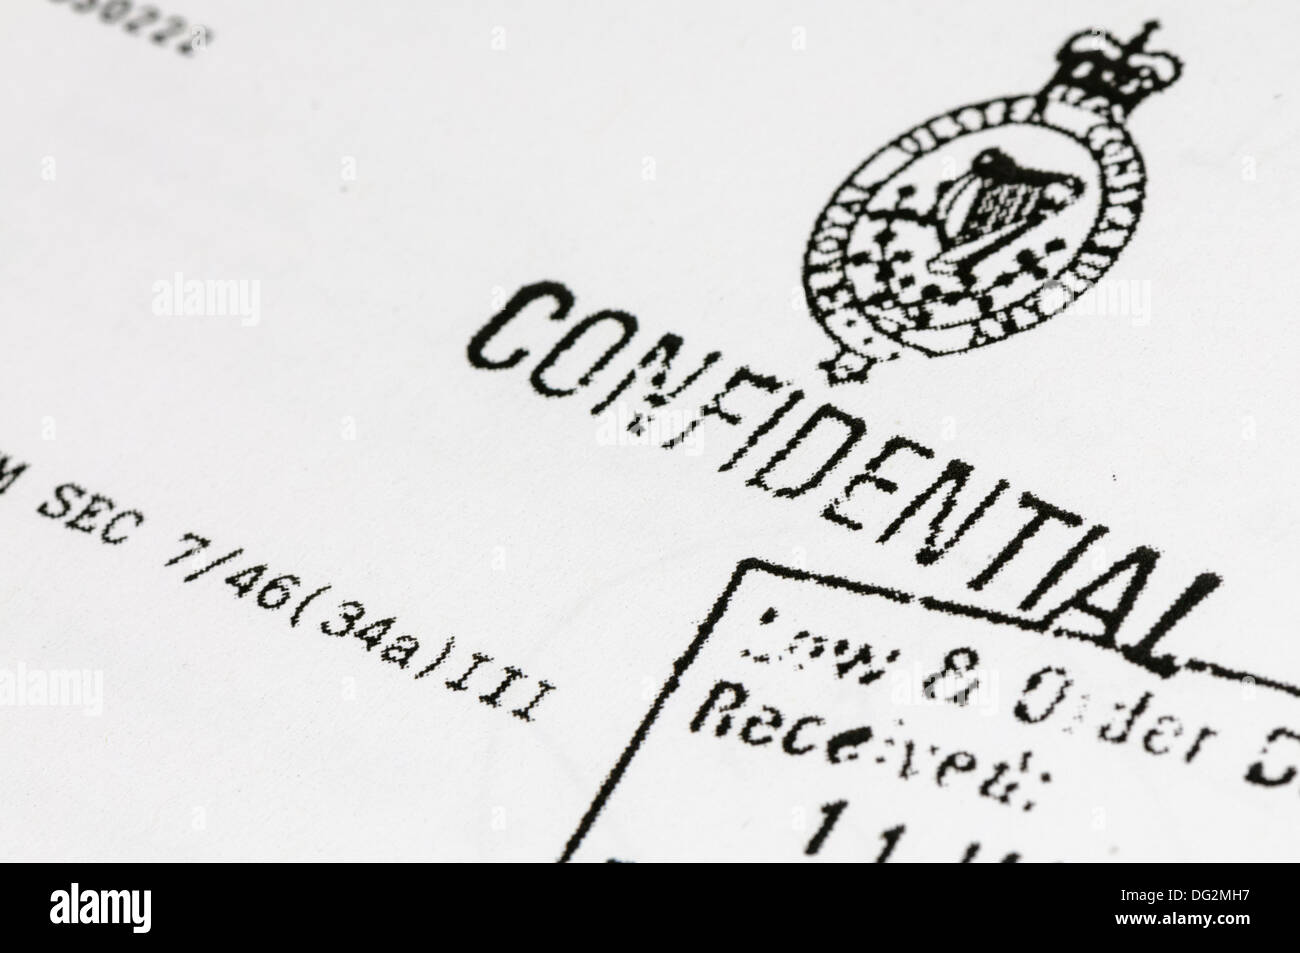 'Confidential' police document from the Royal Ulster Constabularly - Stock Image